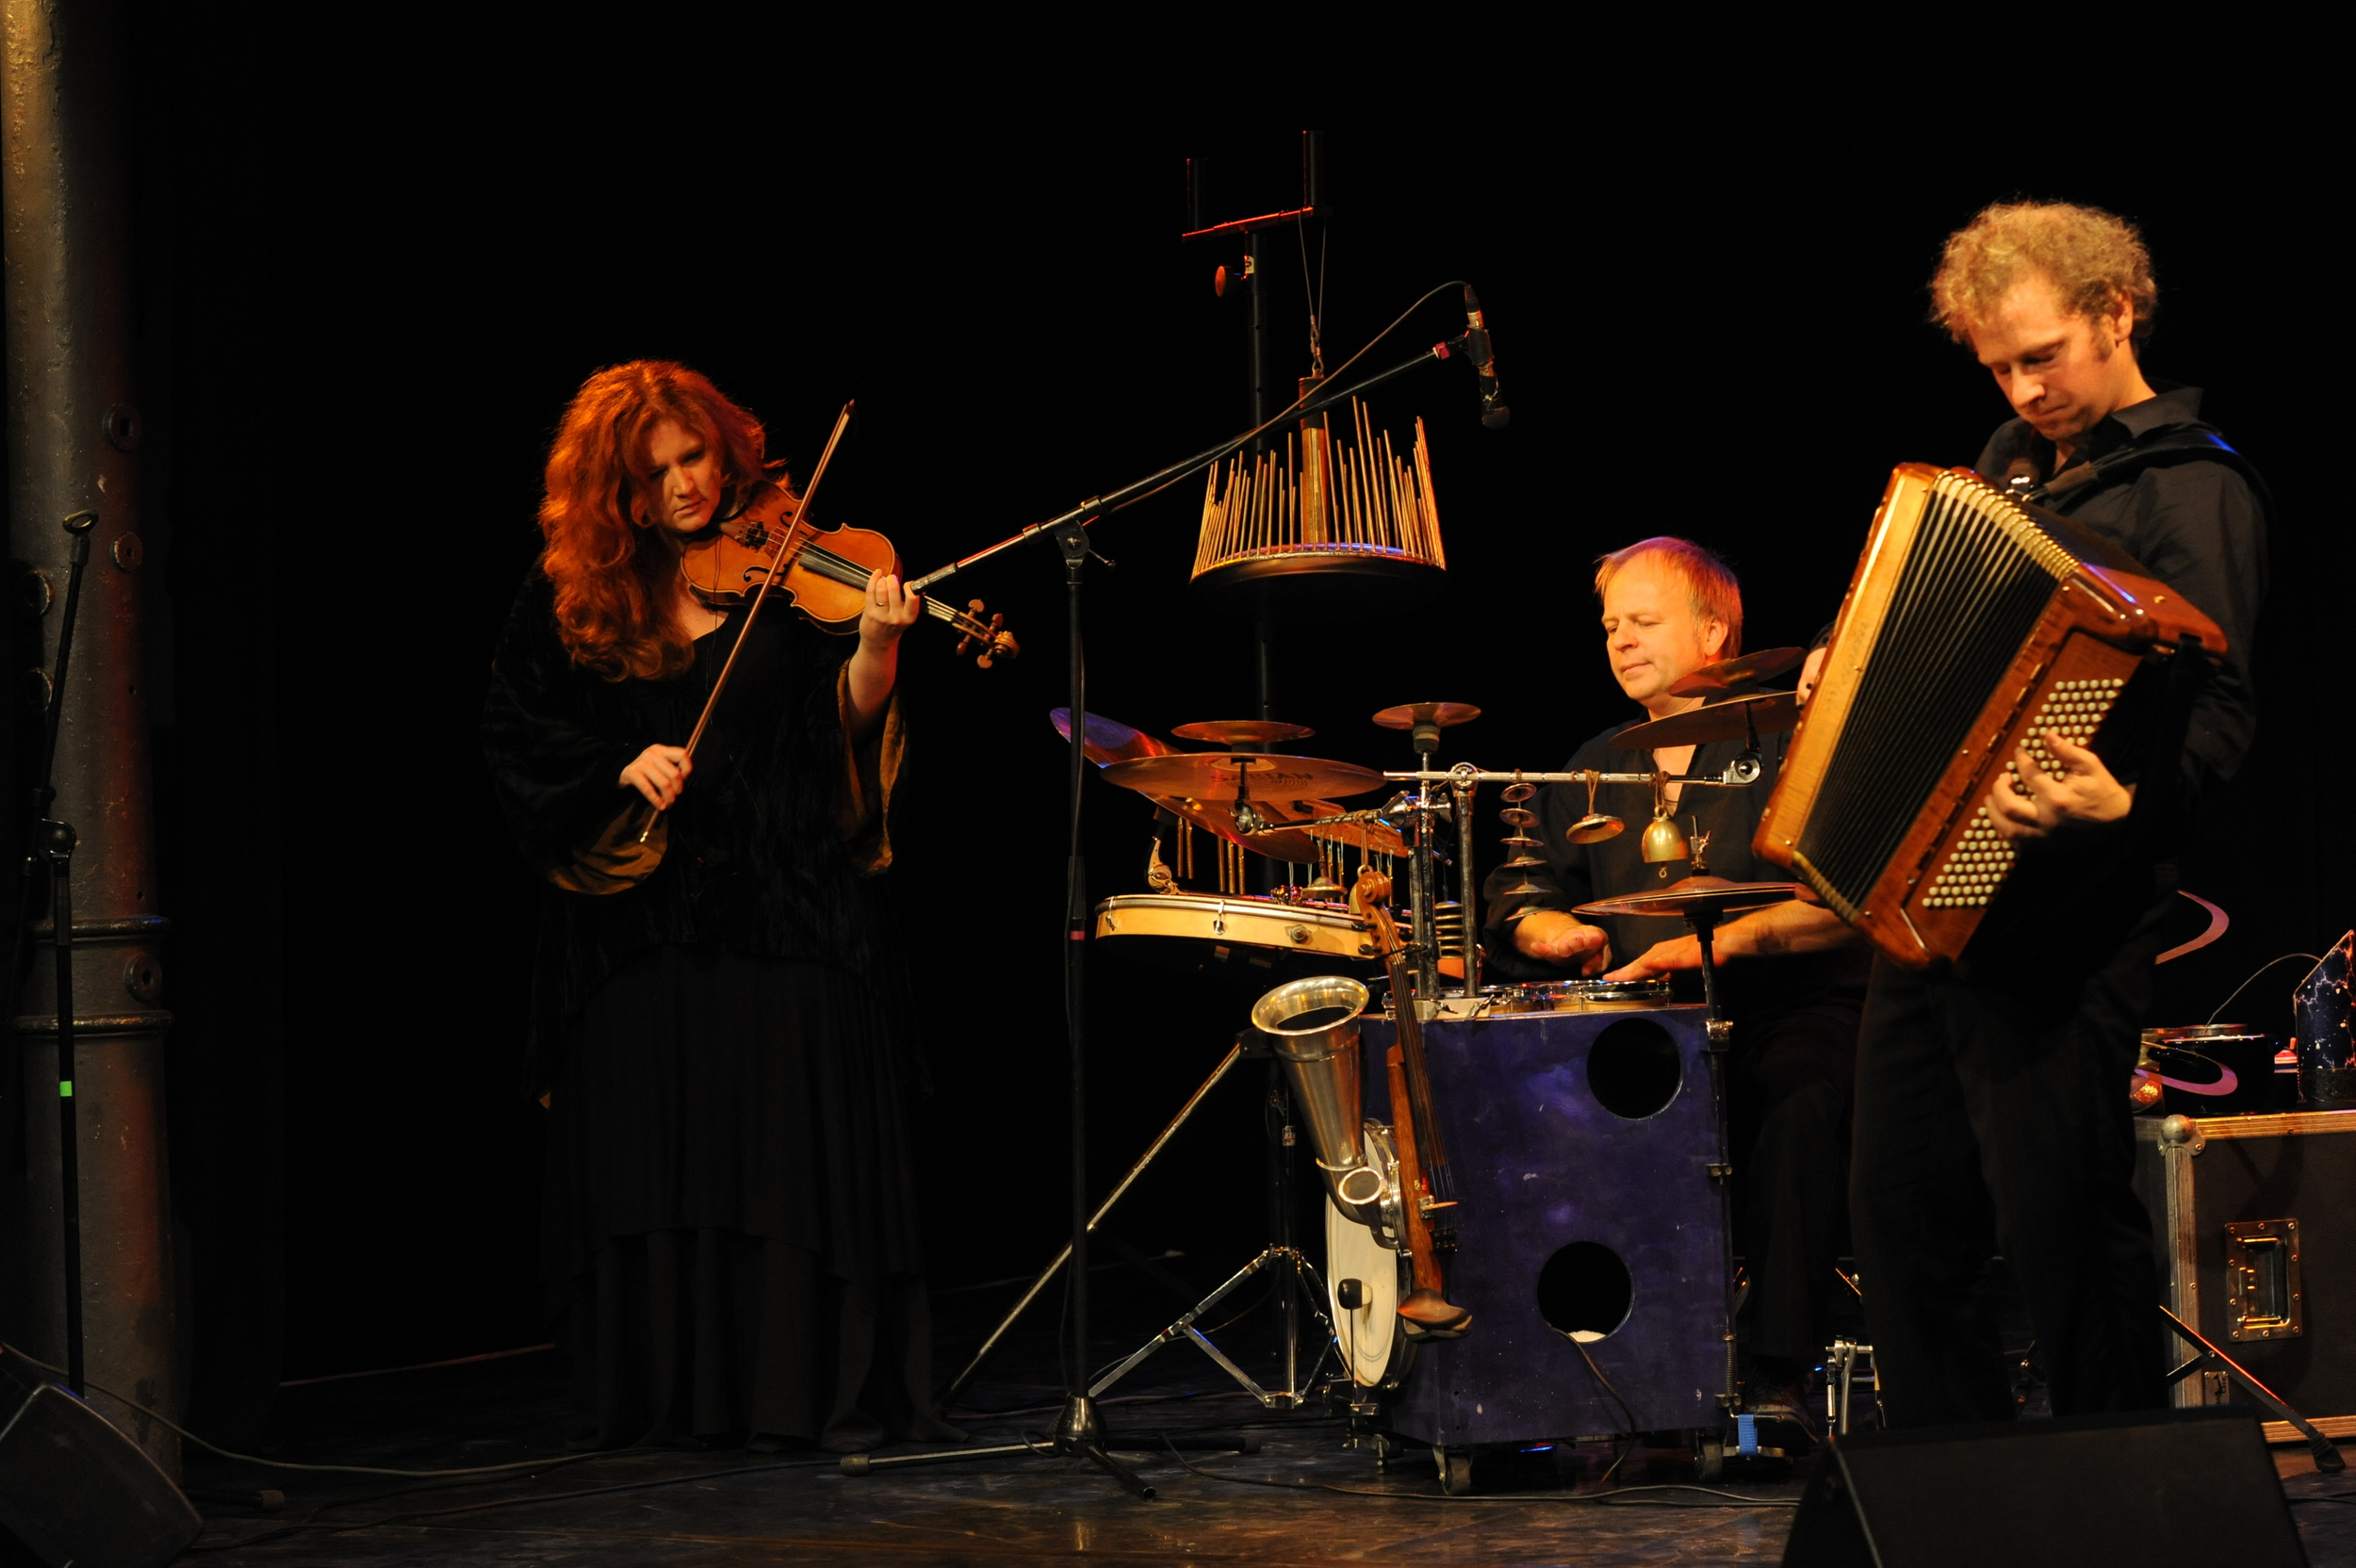 """""""Into the deep"""": Martina Eisenreich, Andreas Hinterseher & Wolfgang Lohmeier (live). Photography by Yakup Zeyrek."""